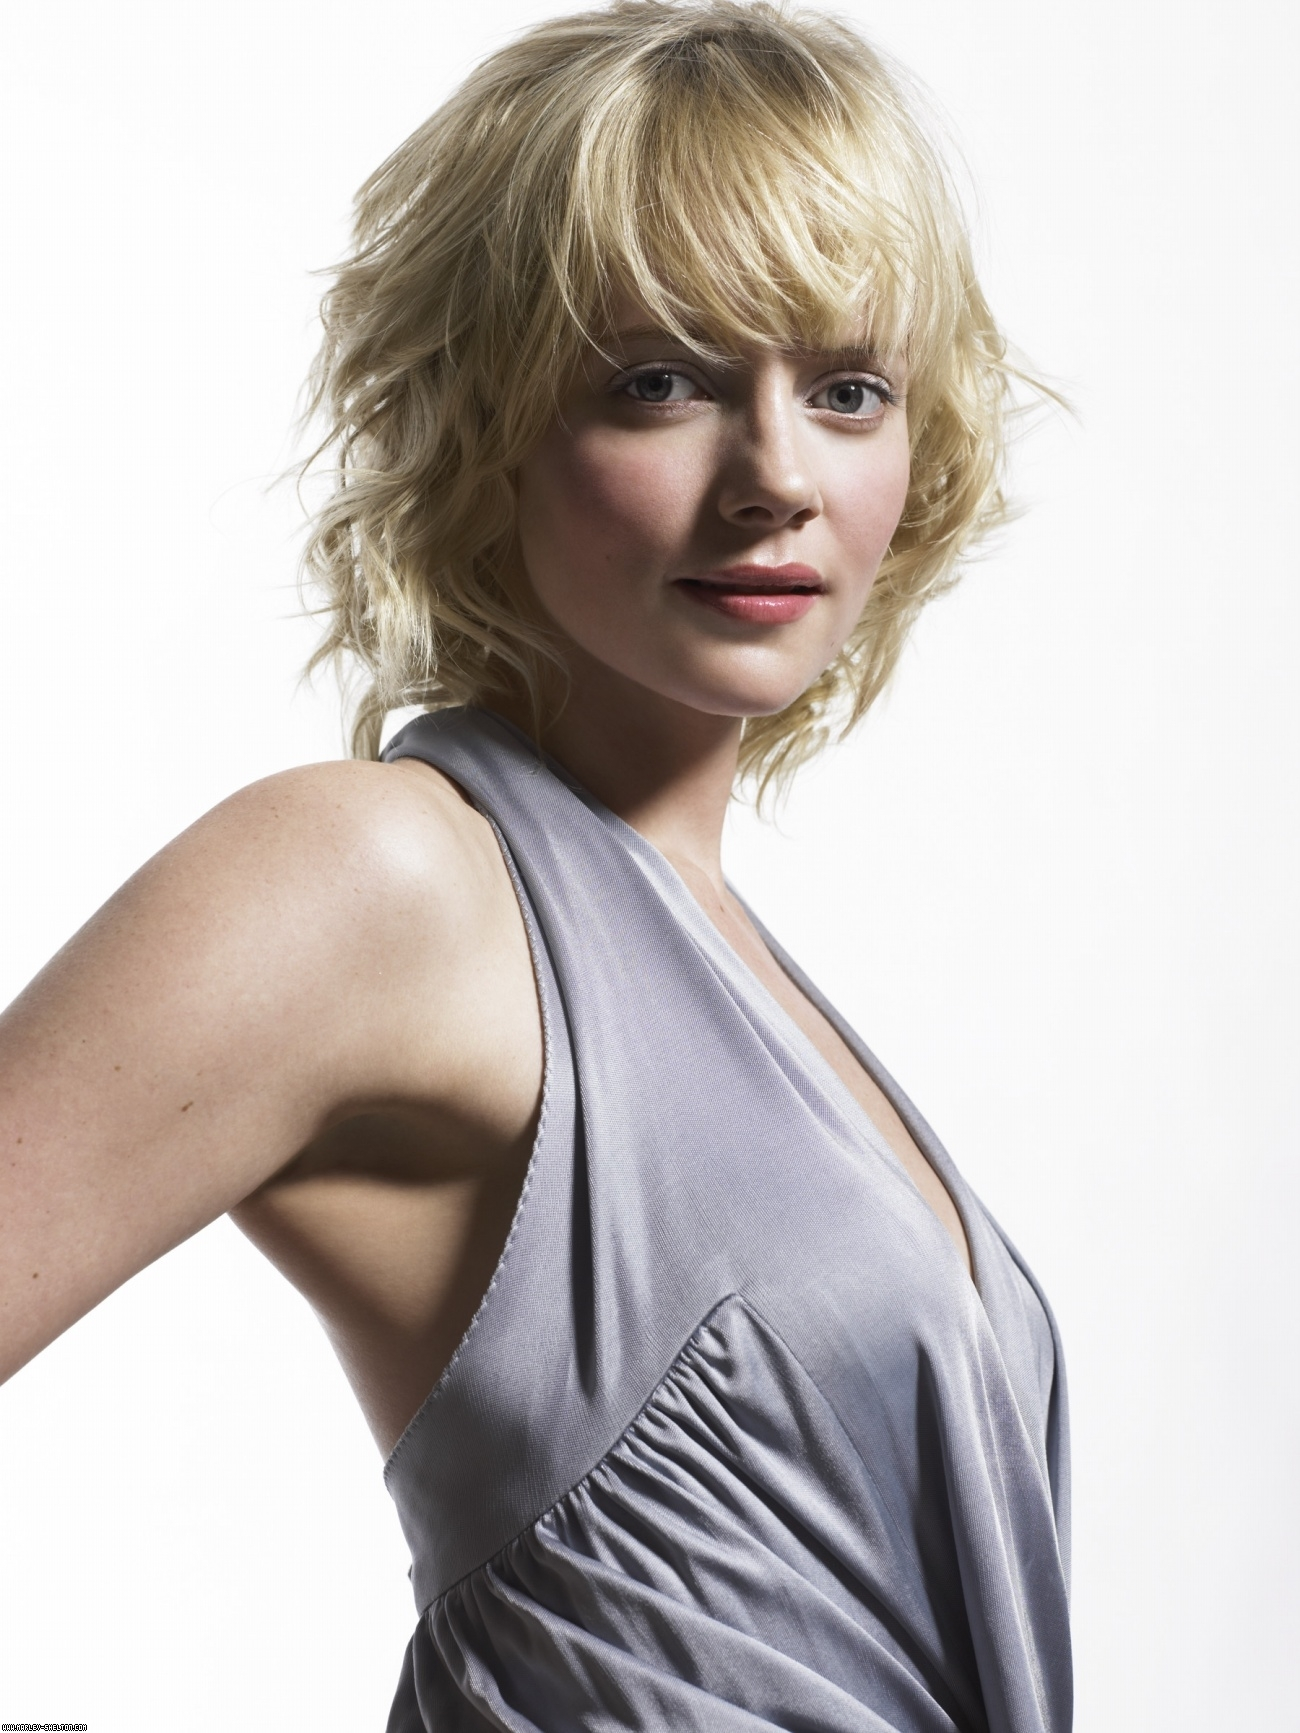 marley shelton pictures images photos images77com